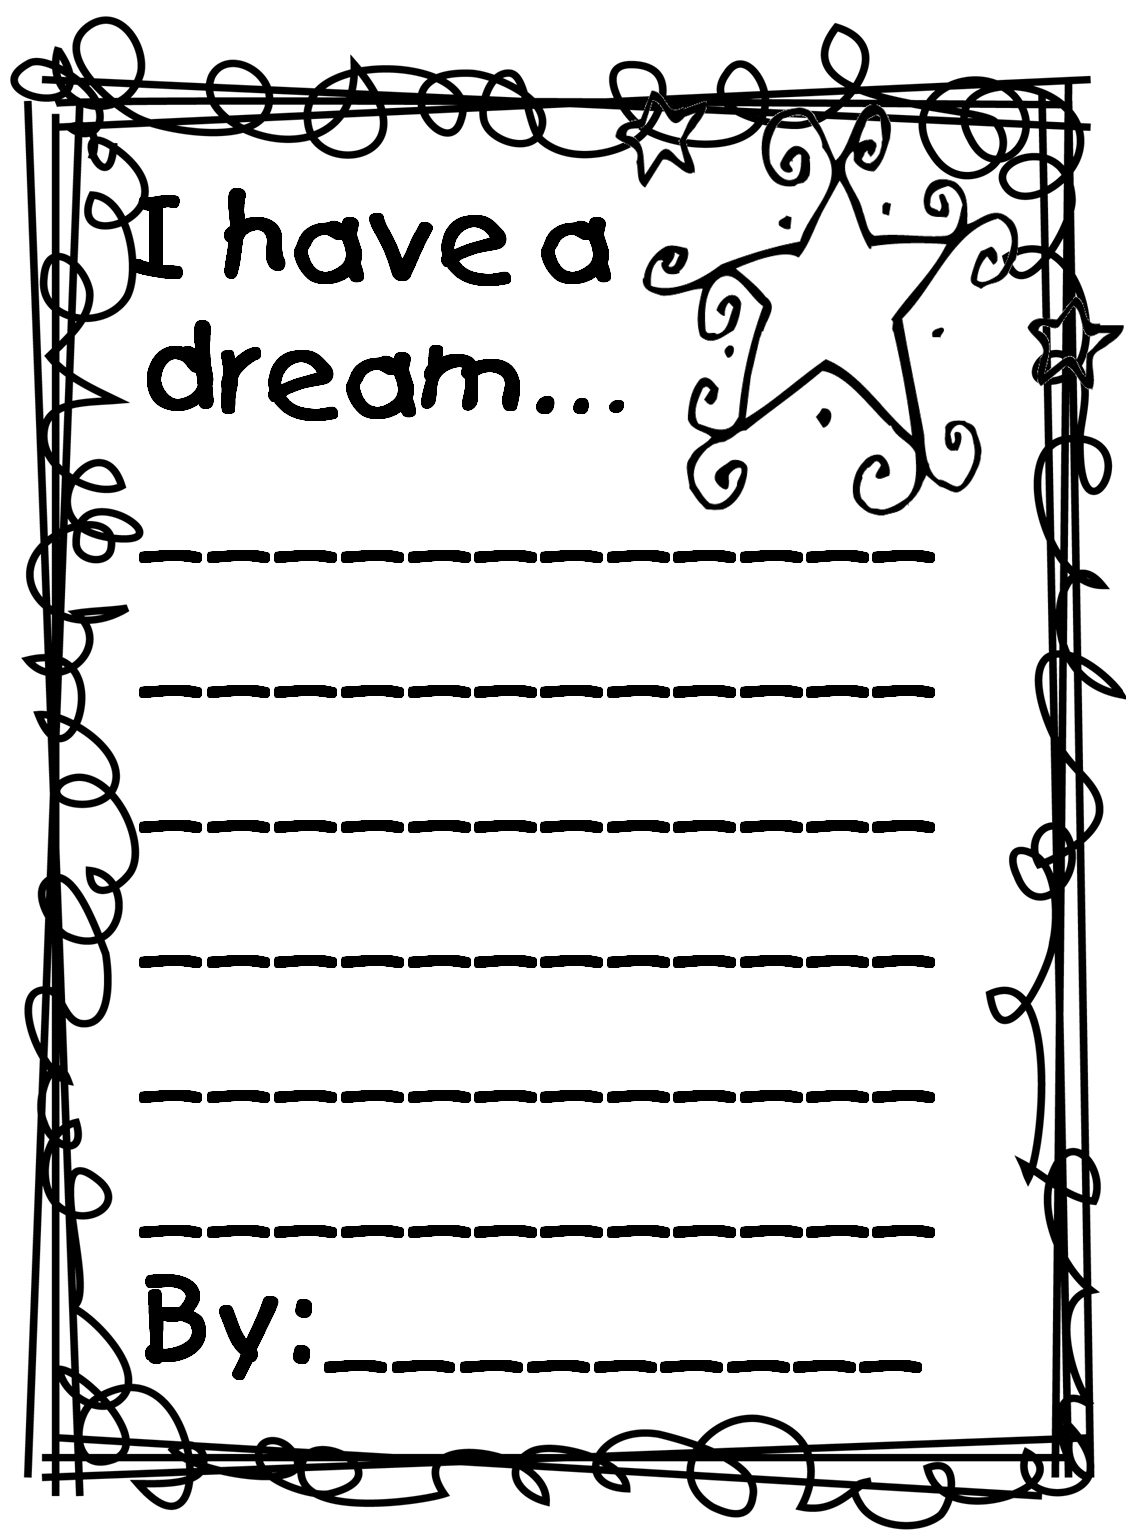 Martin Luther King Jr Coloring Pages and Worksheets - Best Coloring ...